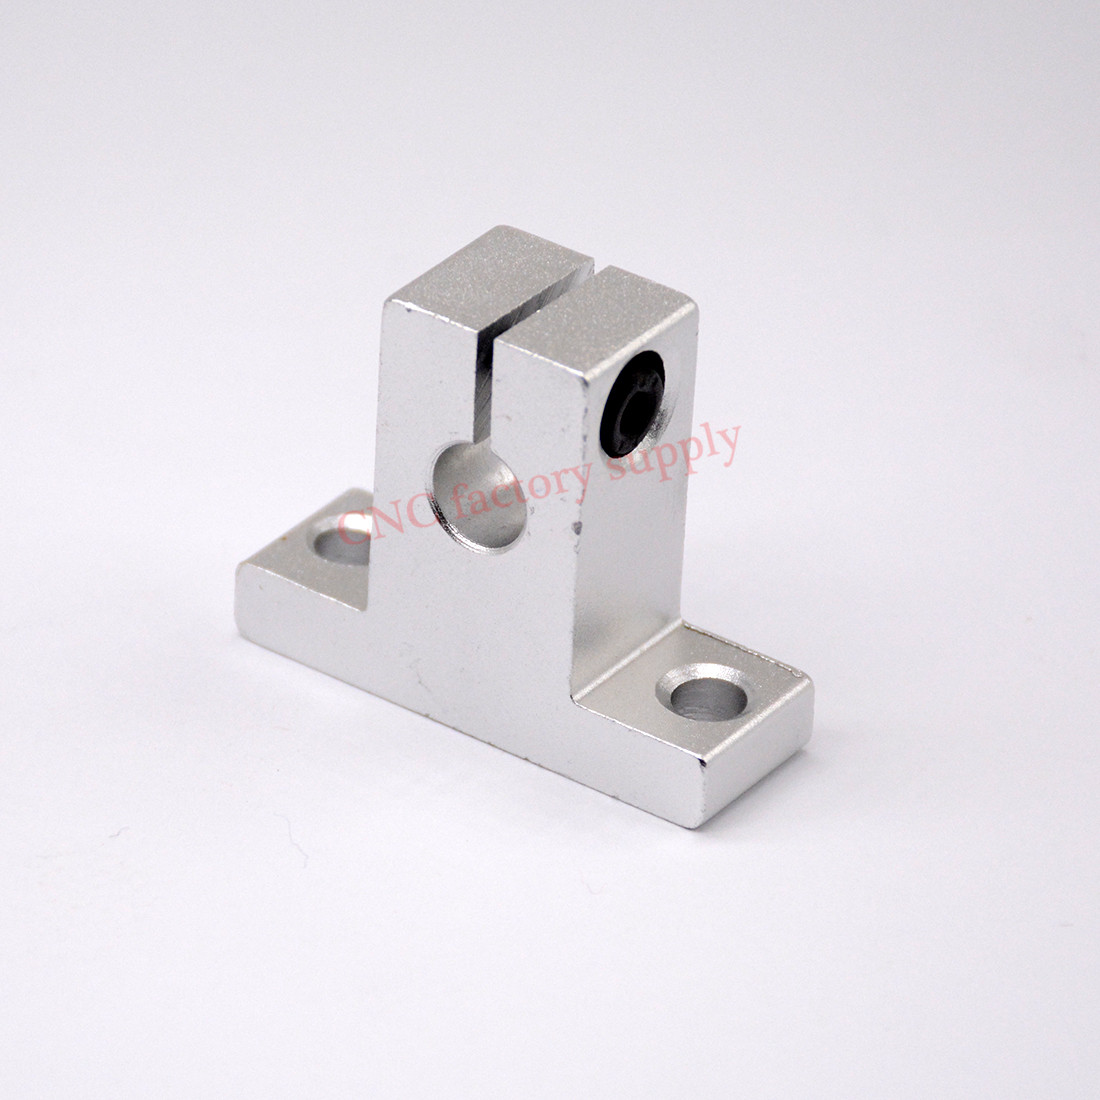 10pcs/lot Free Shipping SK20 20mm linear bearing rail shaft support XYZ Table CNC Router SH20A стоимость